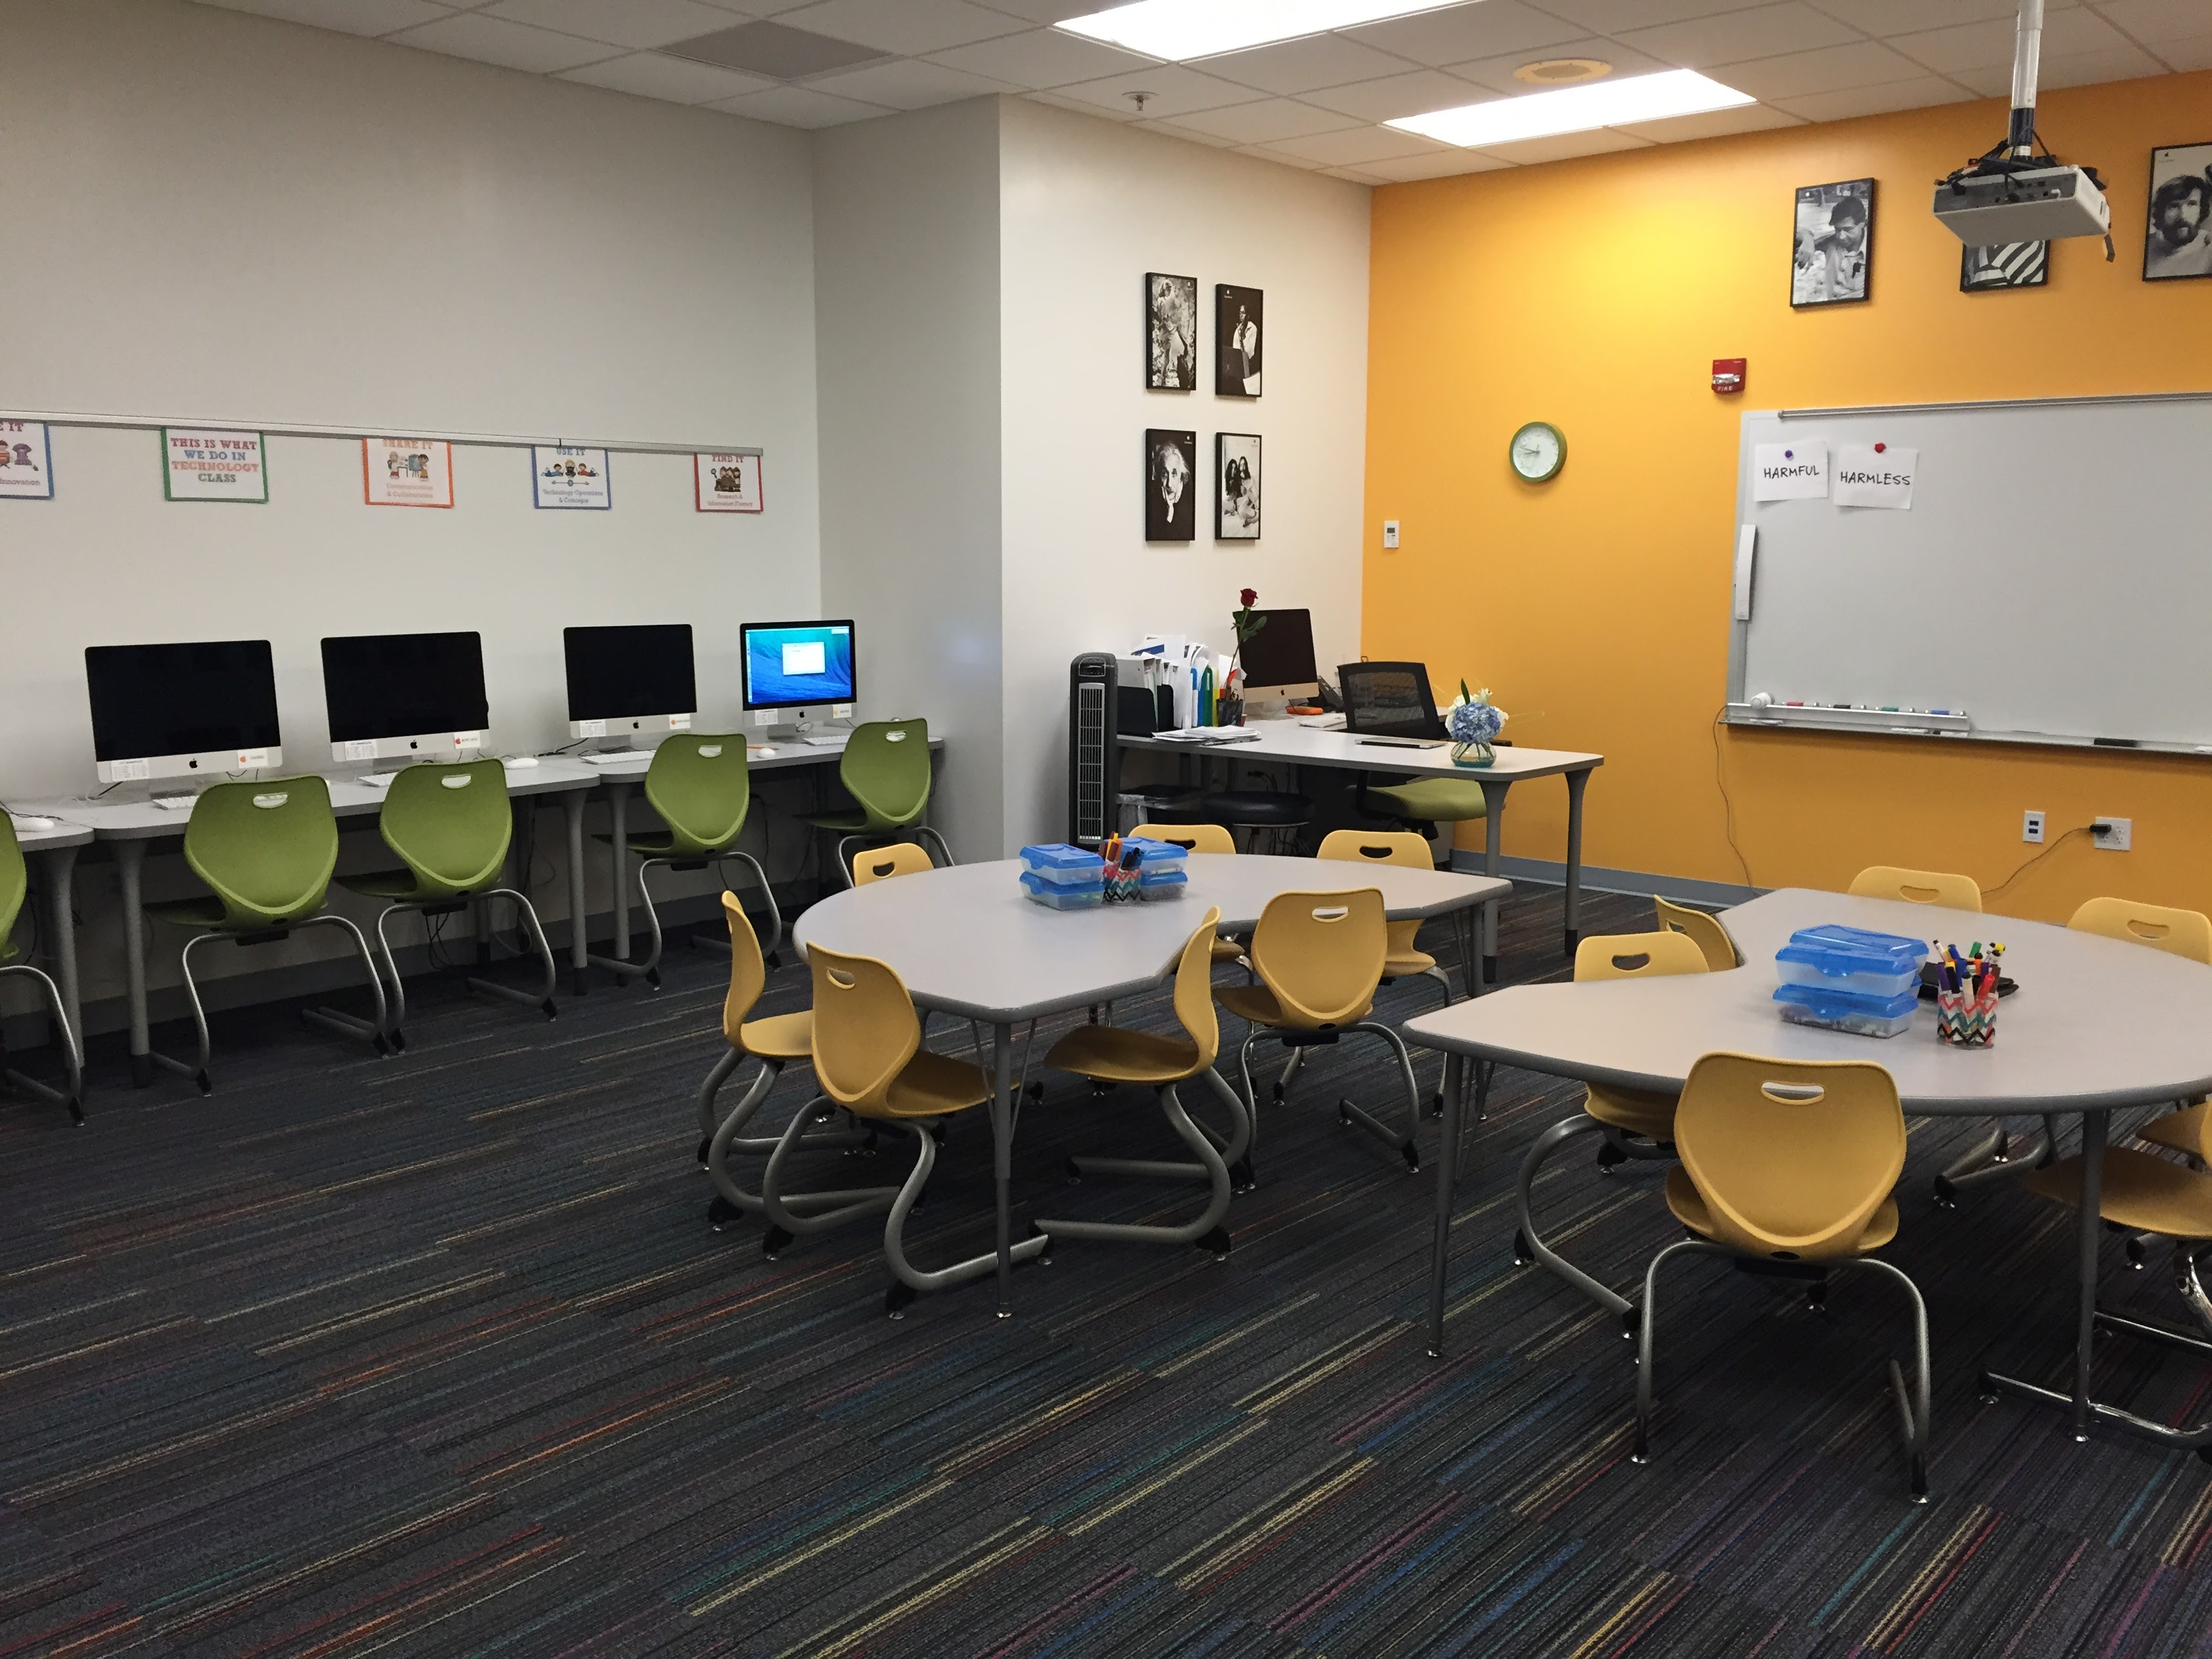 Design Your Classroom ~ Ways to upgrade your classroom design cult of pedagogy